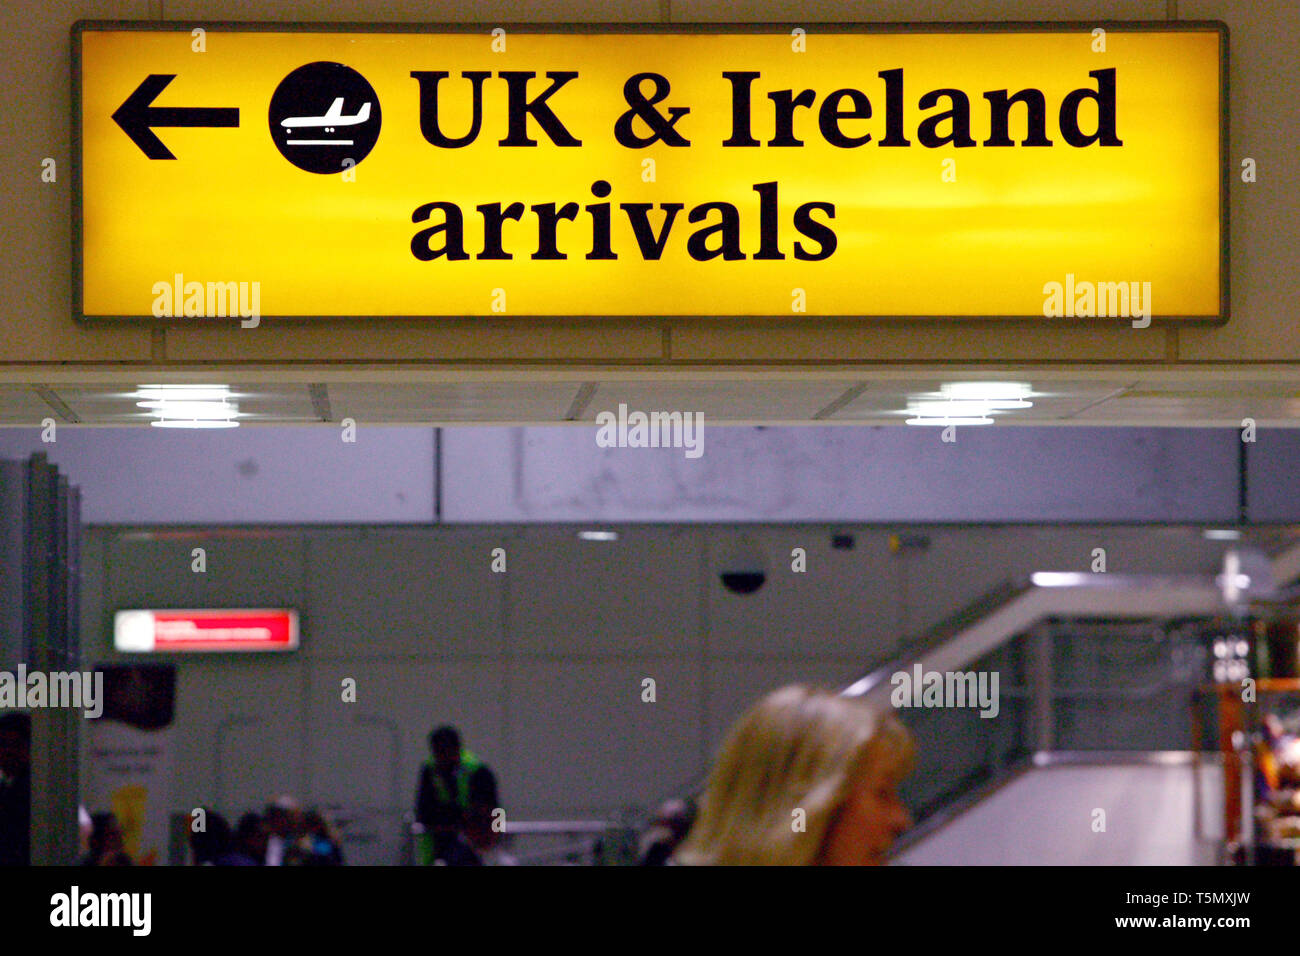 Arrivals at London Heathrow Terminal One. 16.05.2009. - Stock Image